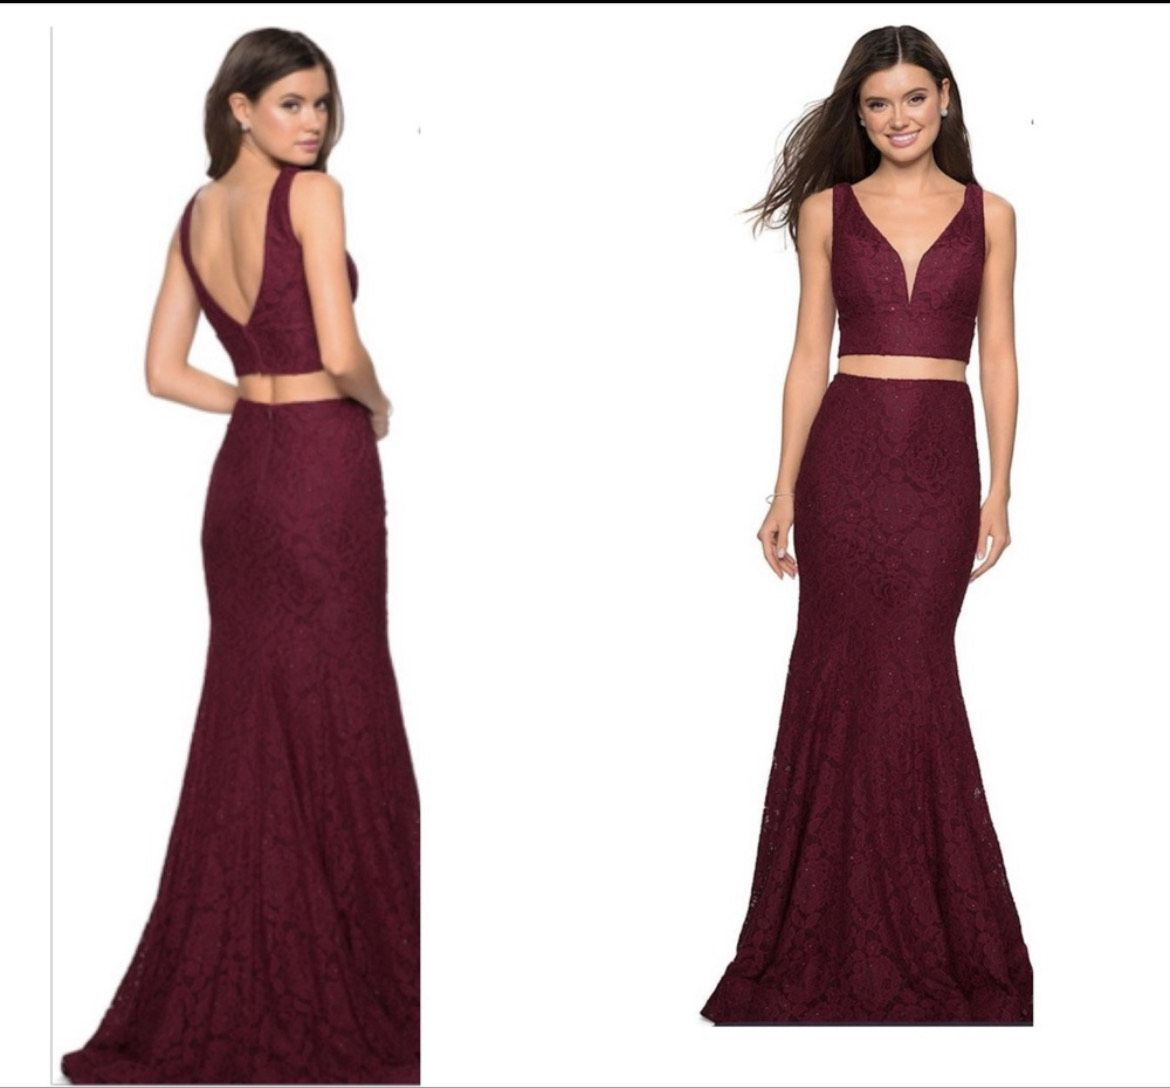 La Femme Red Size 4 Burgundy Plunge Prom Wedding Guest Straight Dress on Queenly